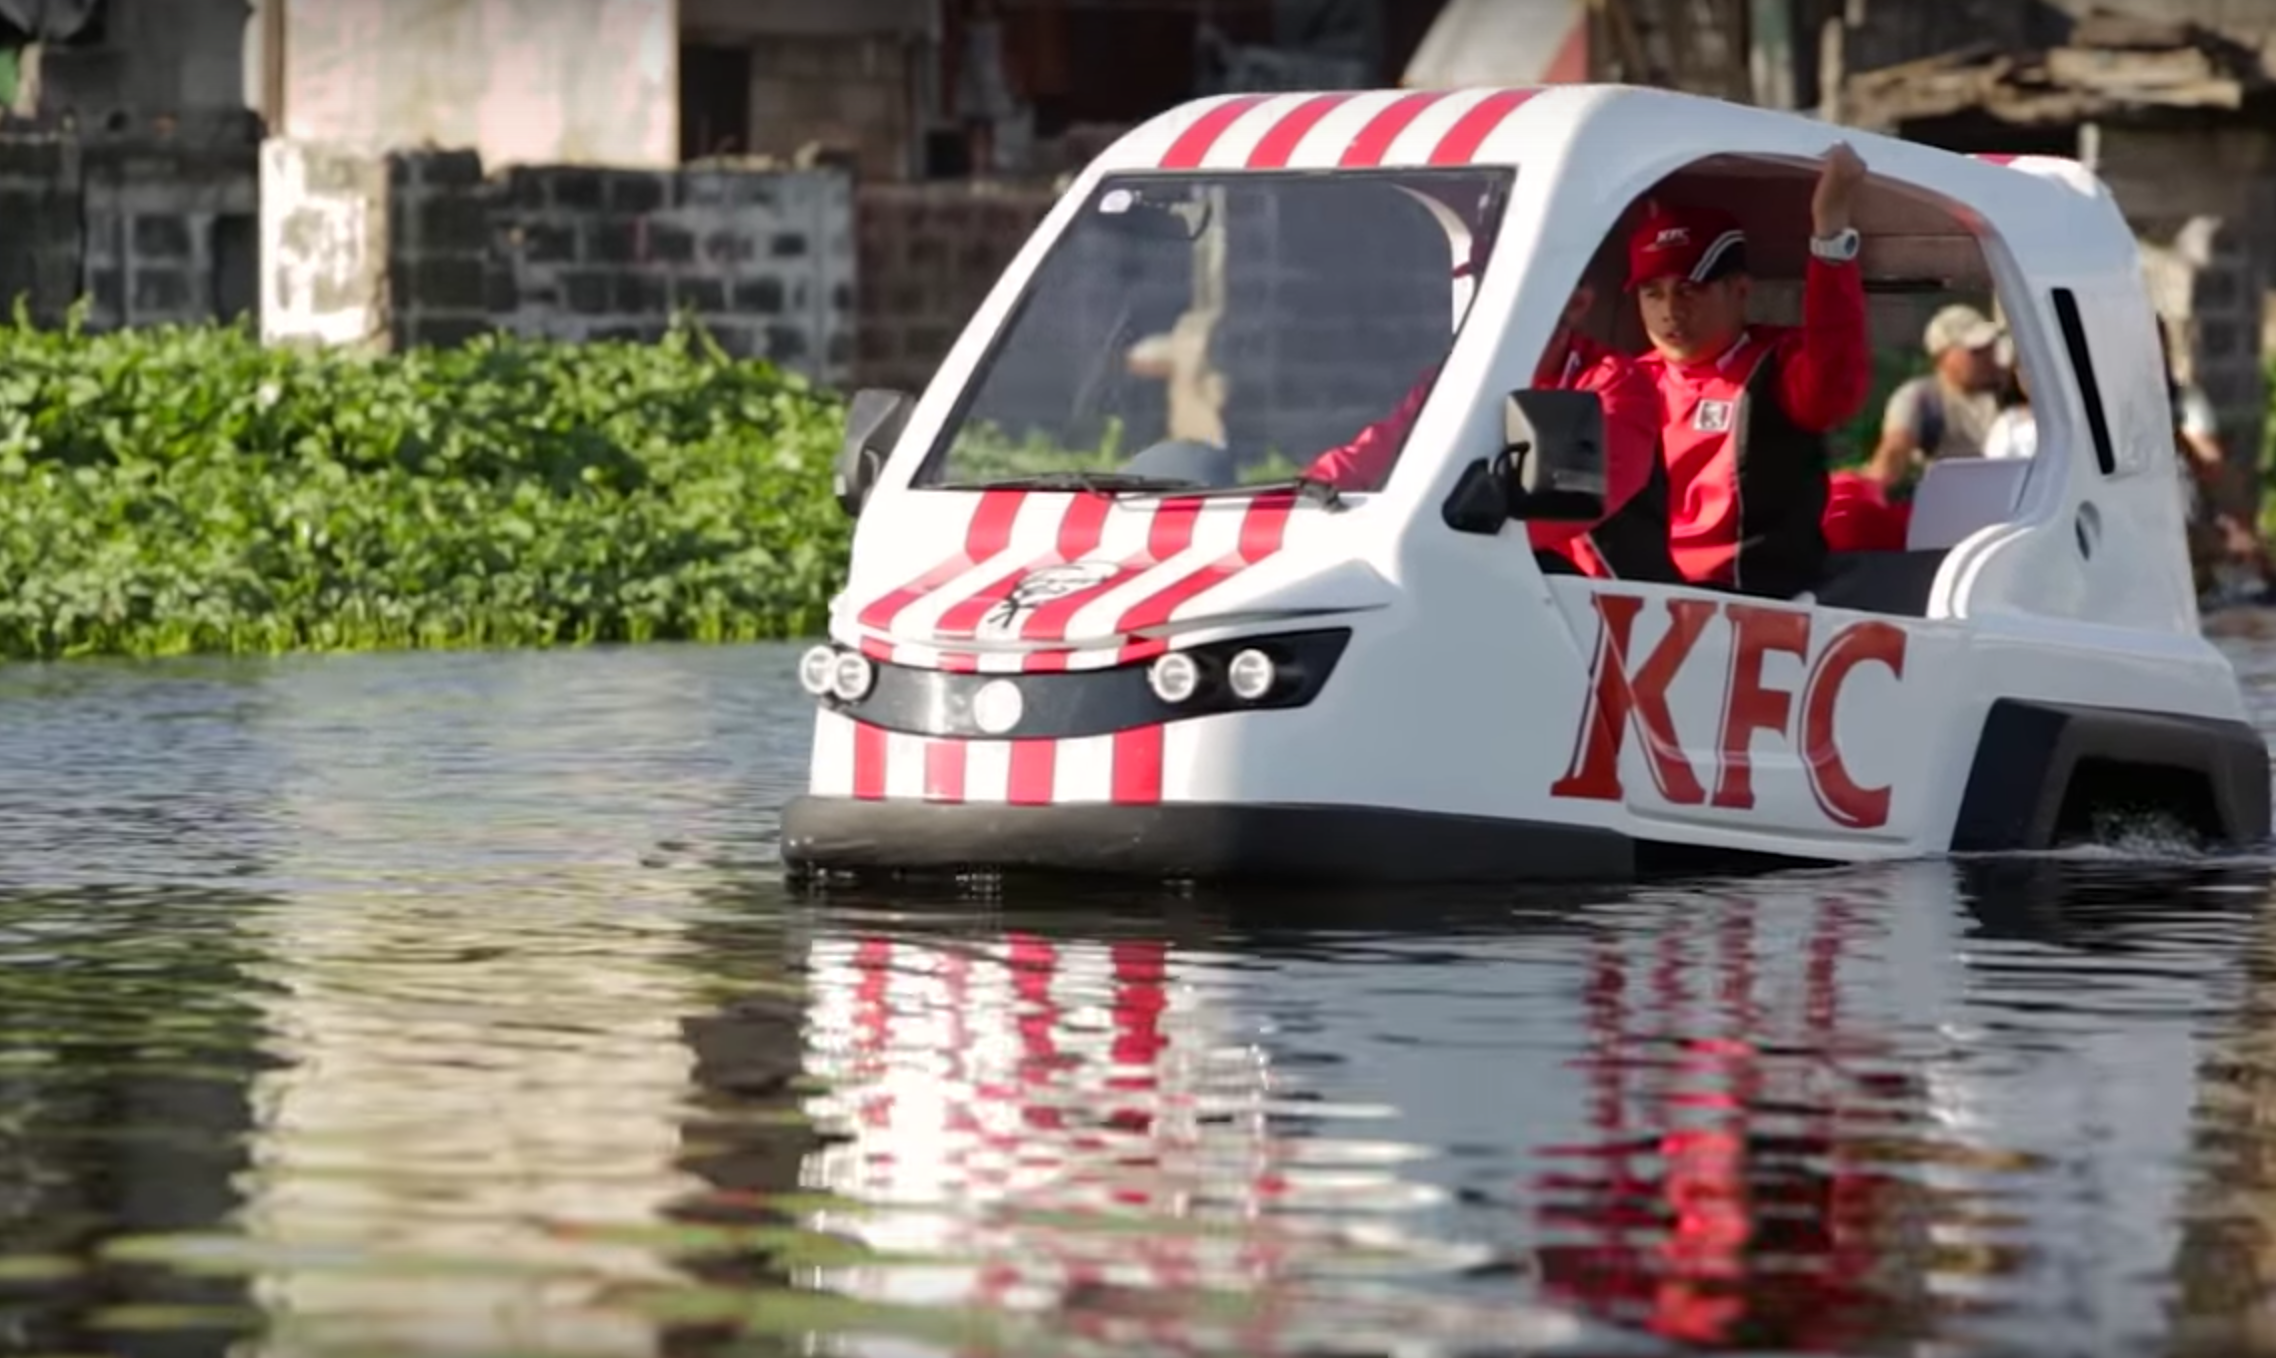 Watch Kfc Uses Hovercraft To Deliver Birthday Surprise To